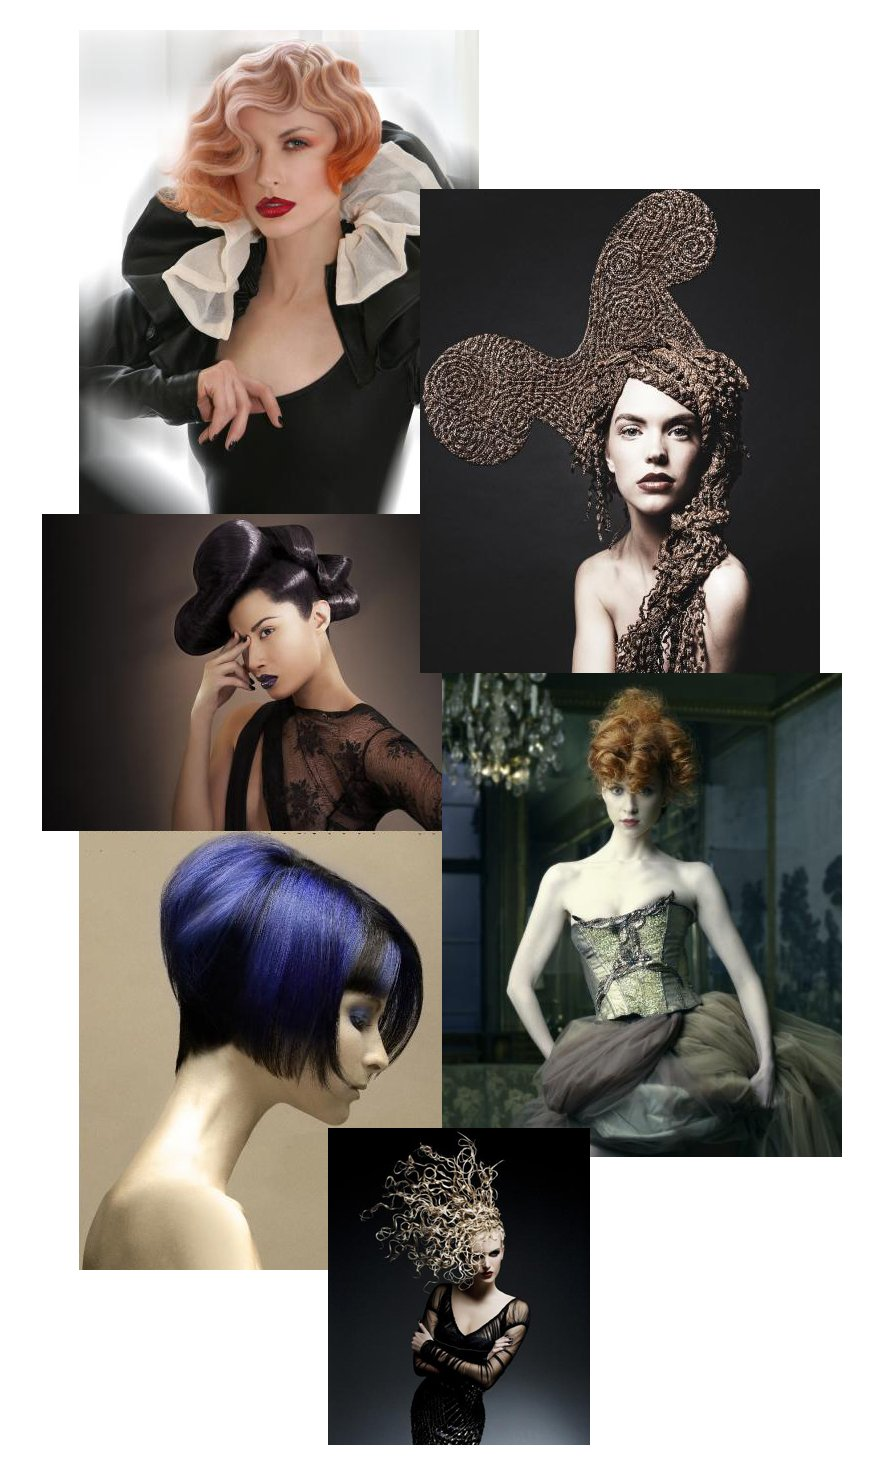 Tips and Tricks for NAHA 2010